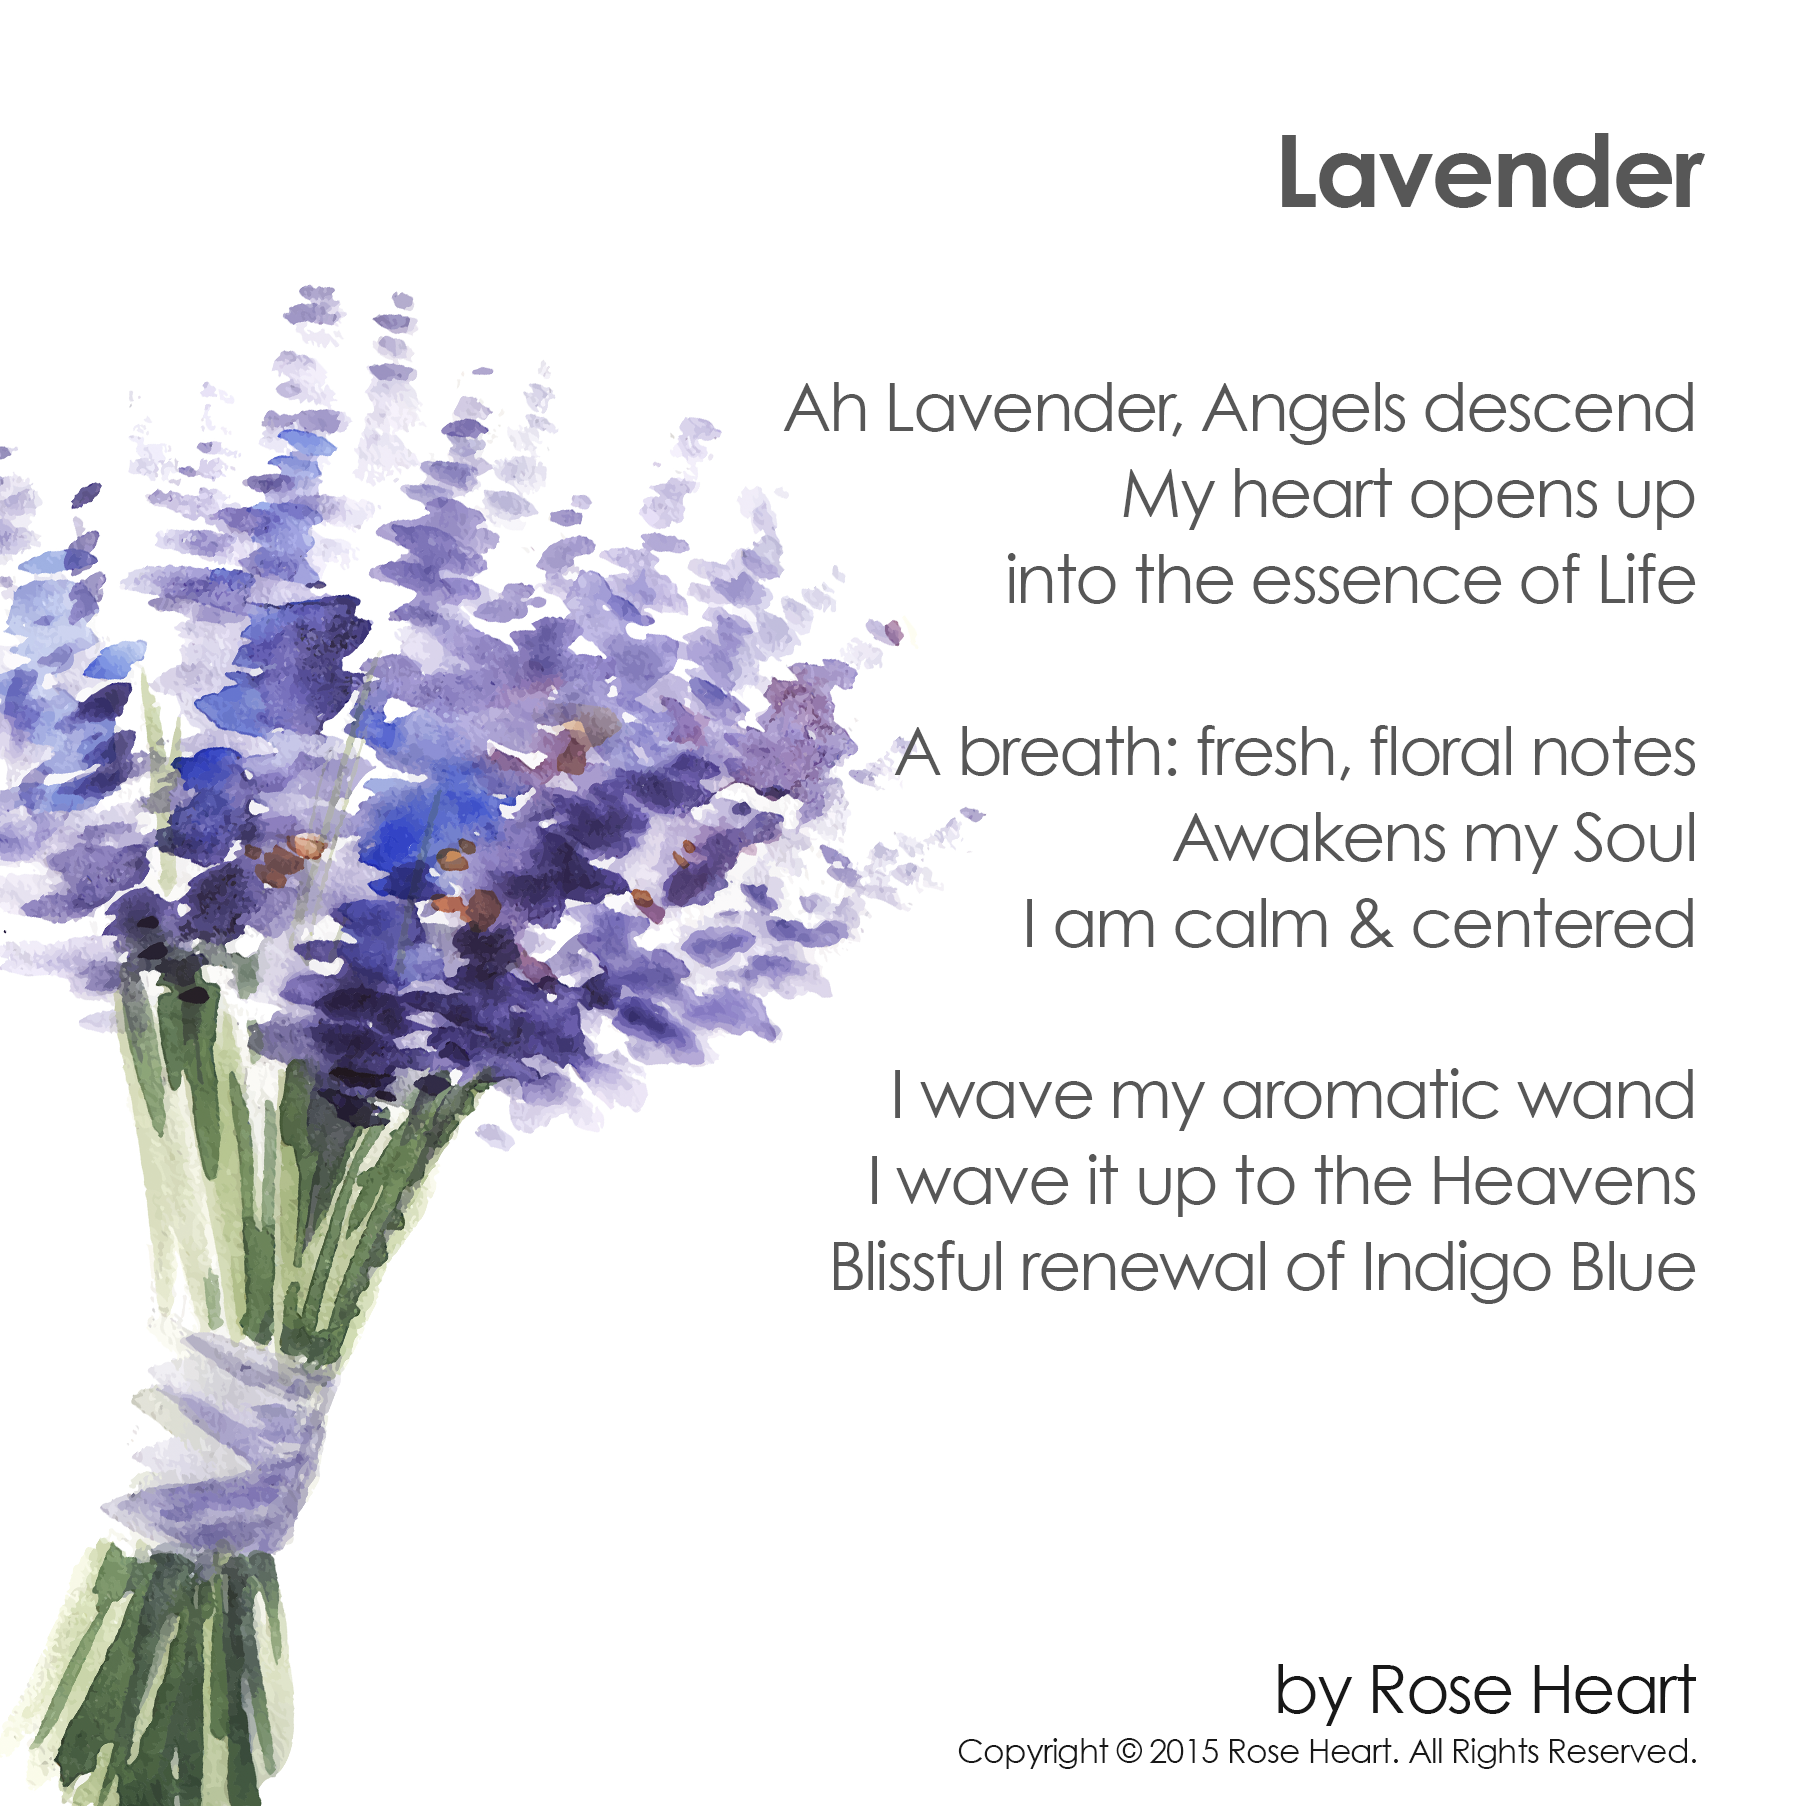 Enjoy This Spiritual Poem About Lavender Let It Soothe Your Spirit In The Same Way Lavender